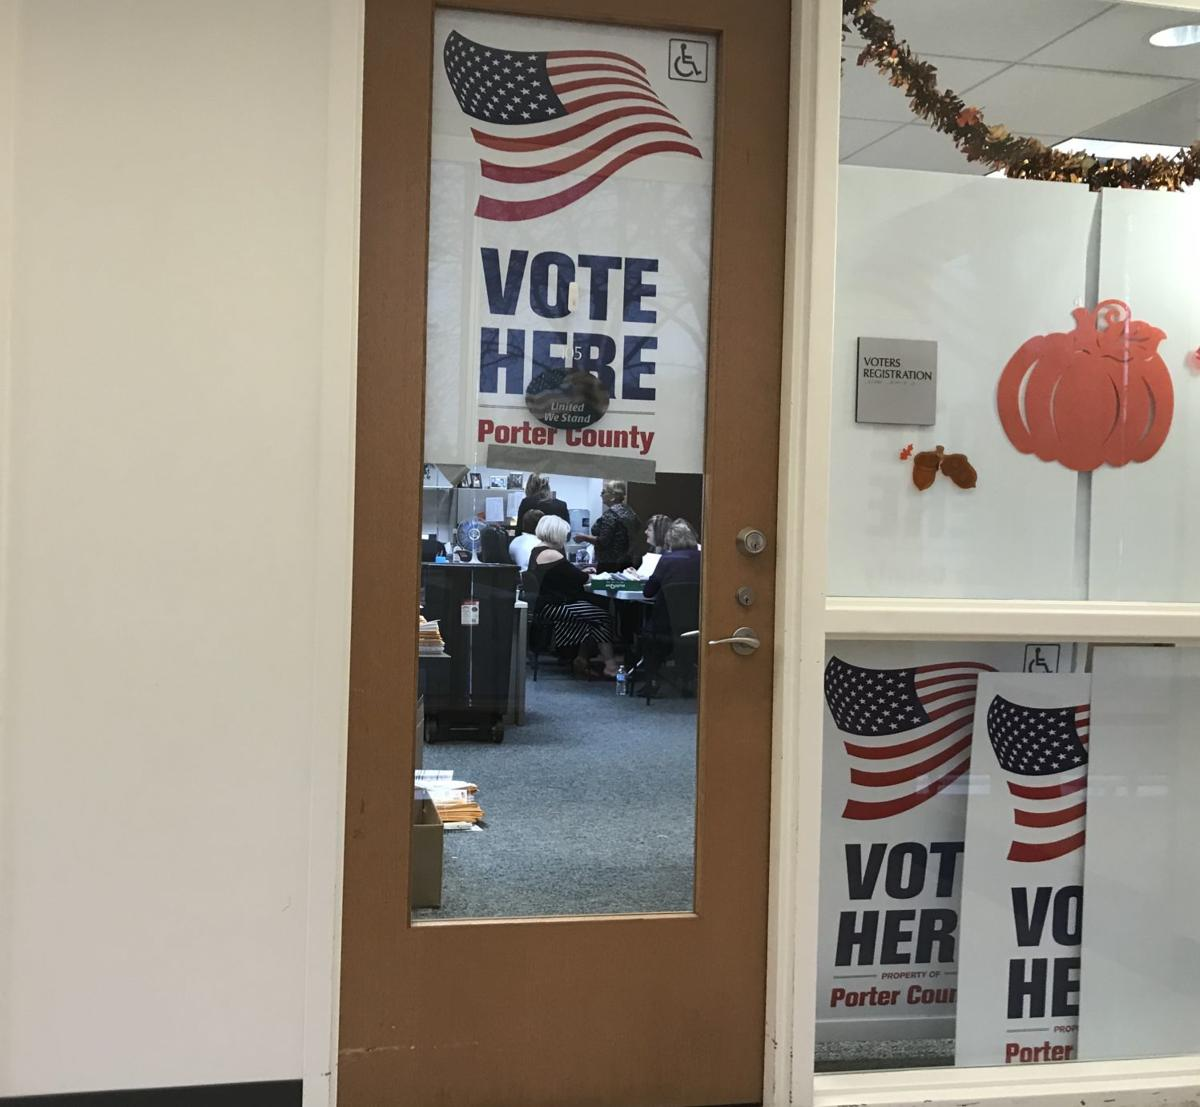 LATEST: Porter County election results may not be ready until after 11 a.m., officials say